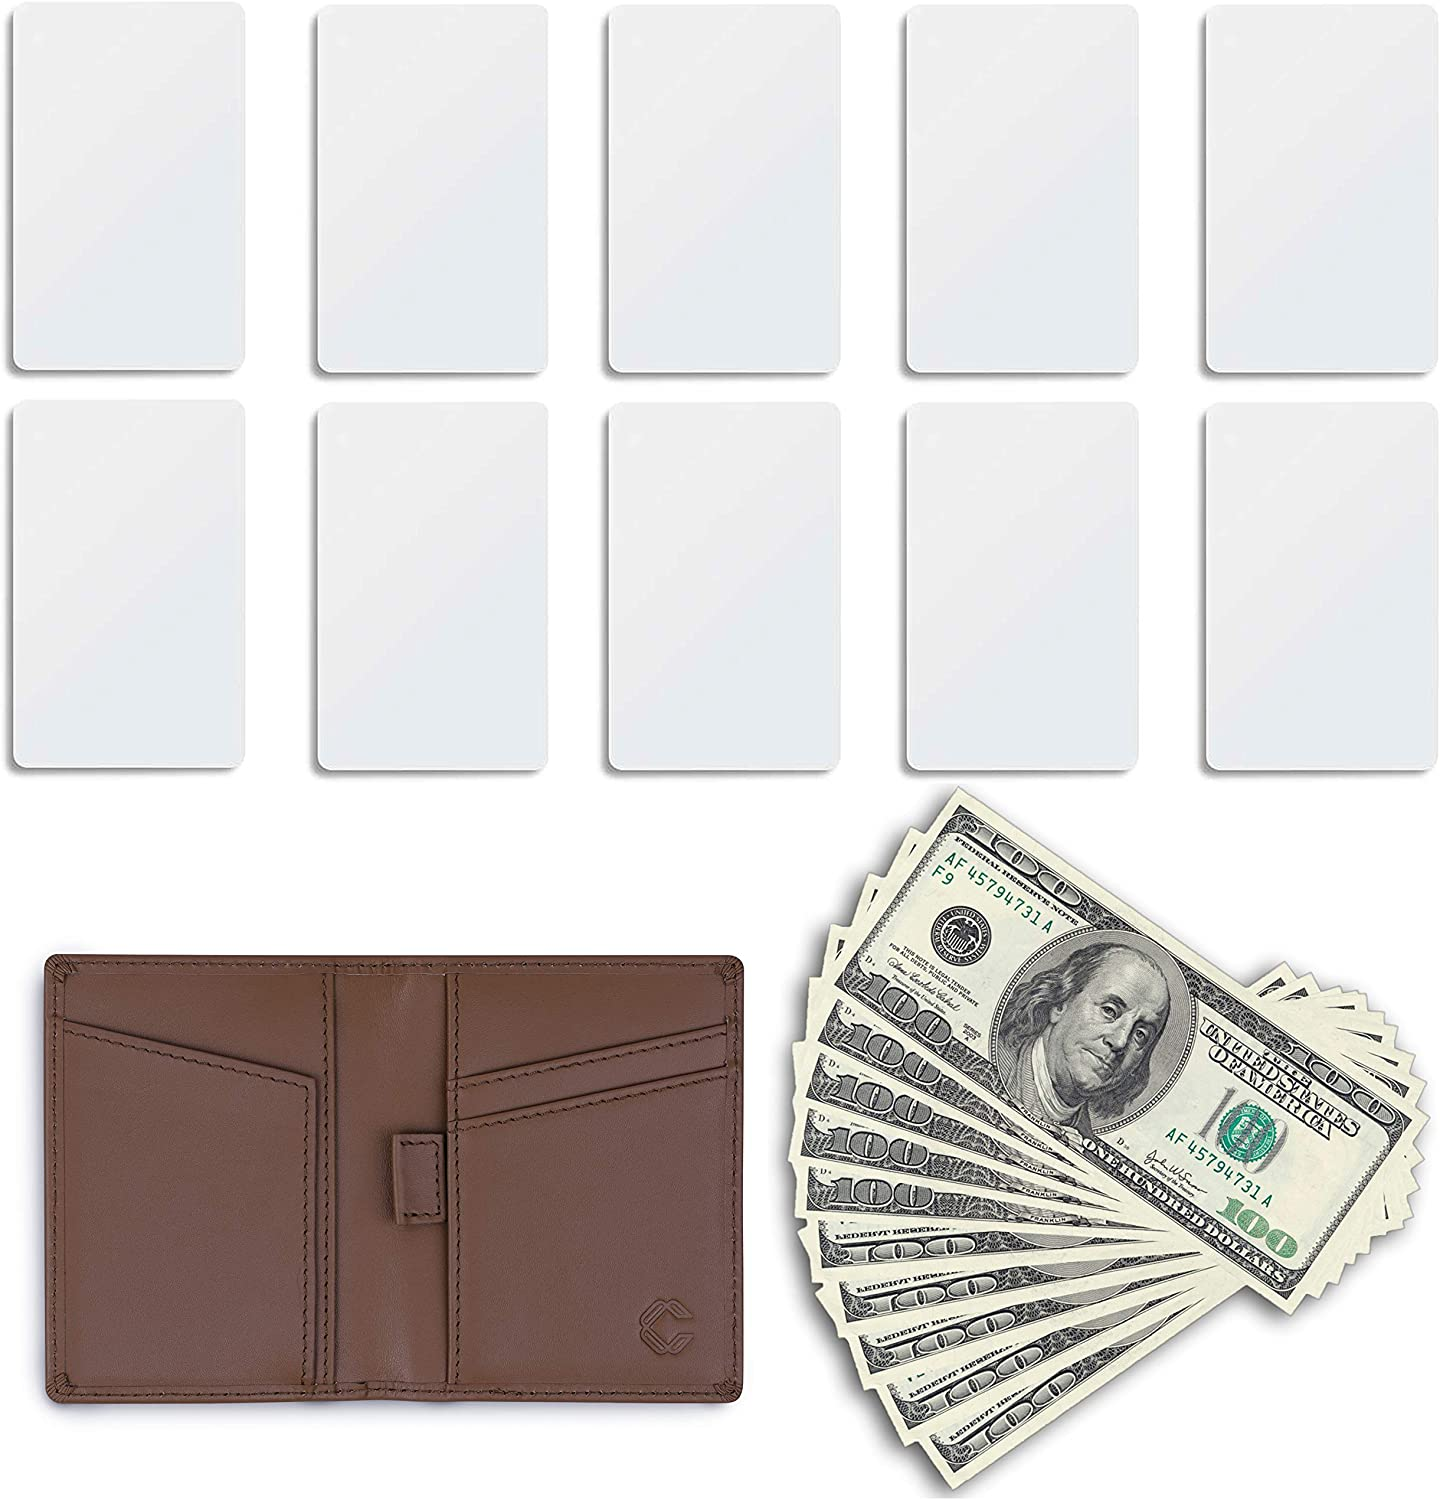 Compacked Slim Pocket Wallet for Men and Women – RFID Blocking Bifold Wallet – Top-Grain Leather Design – 3 x 4-inch Compact RFID Card Sleeve Wallet – Minimalist Design for 10 Cards and 10 Bills (Pecan)